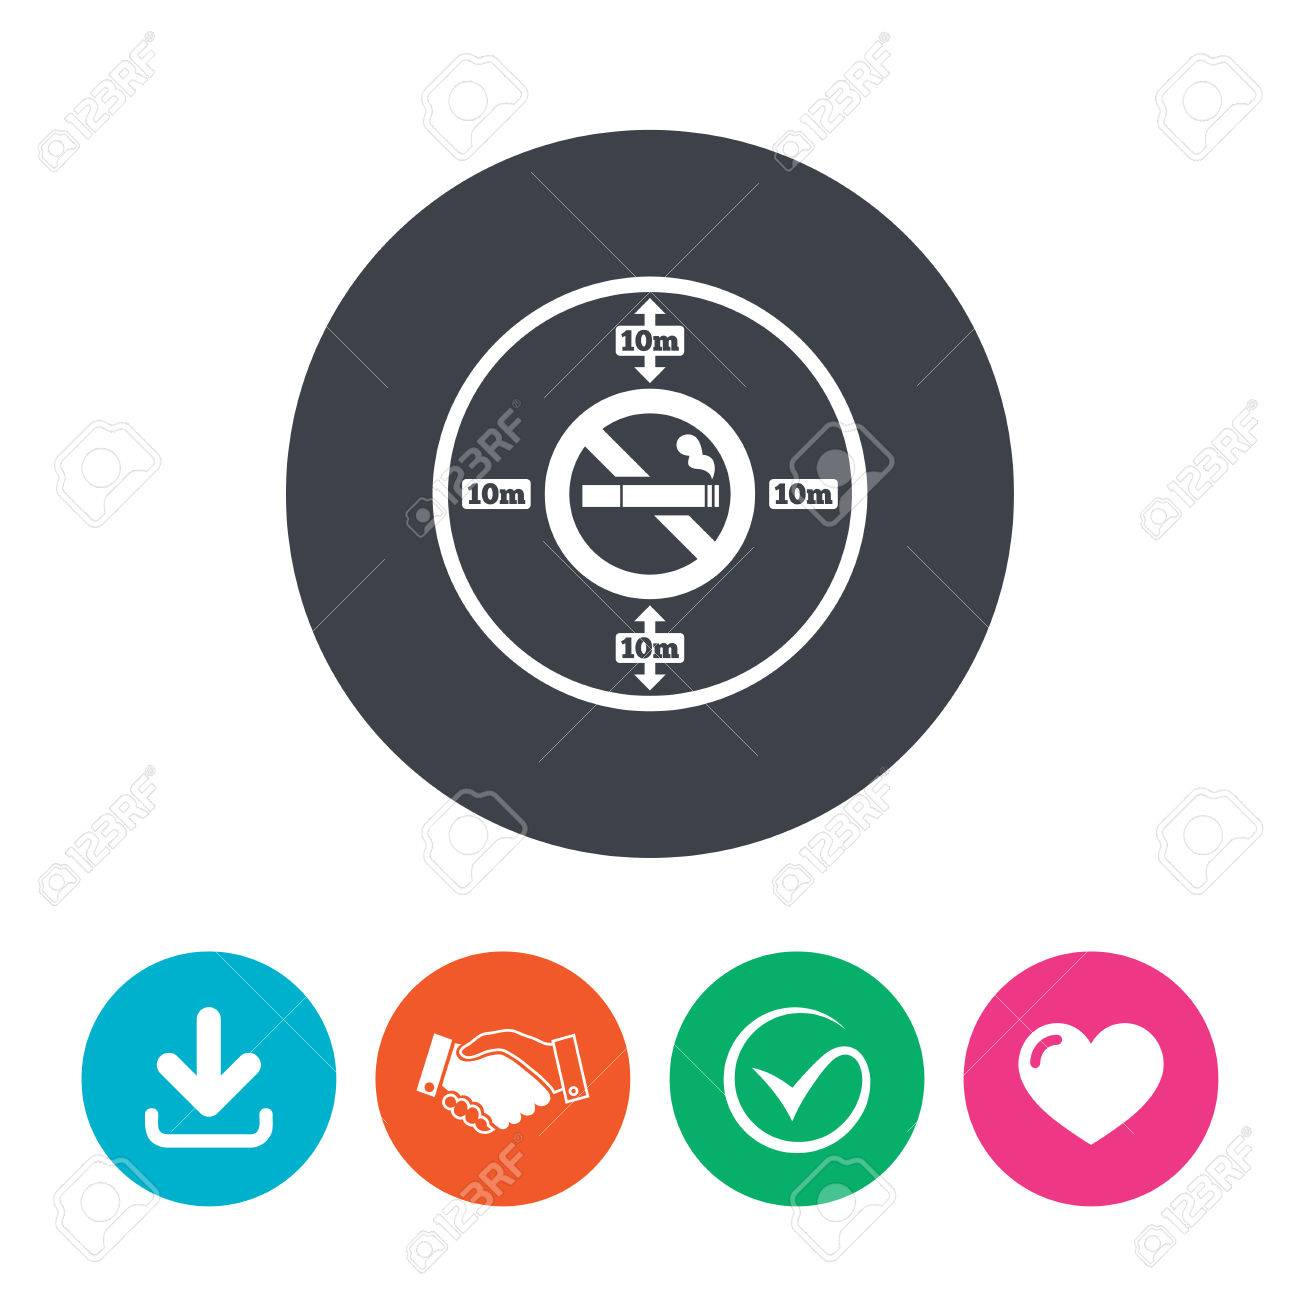 No smoking 10m distance sign icon stop smoking symbol download no smoking 10m distance sign icon stop smoking symbol download arrow handshake buycottarizona Images